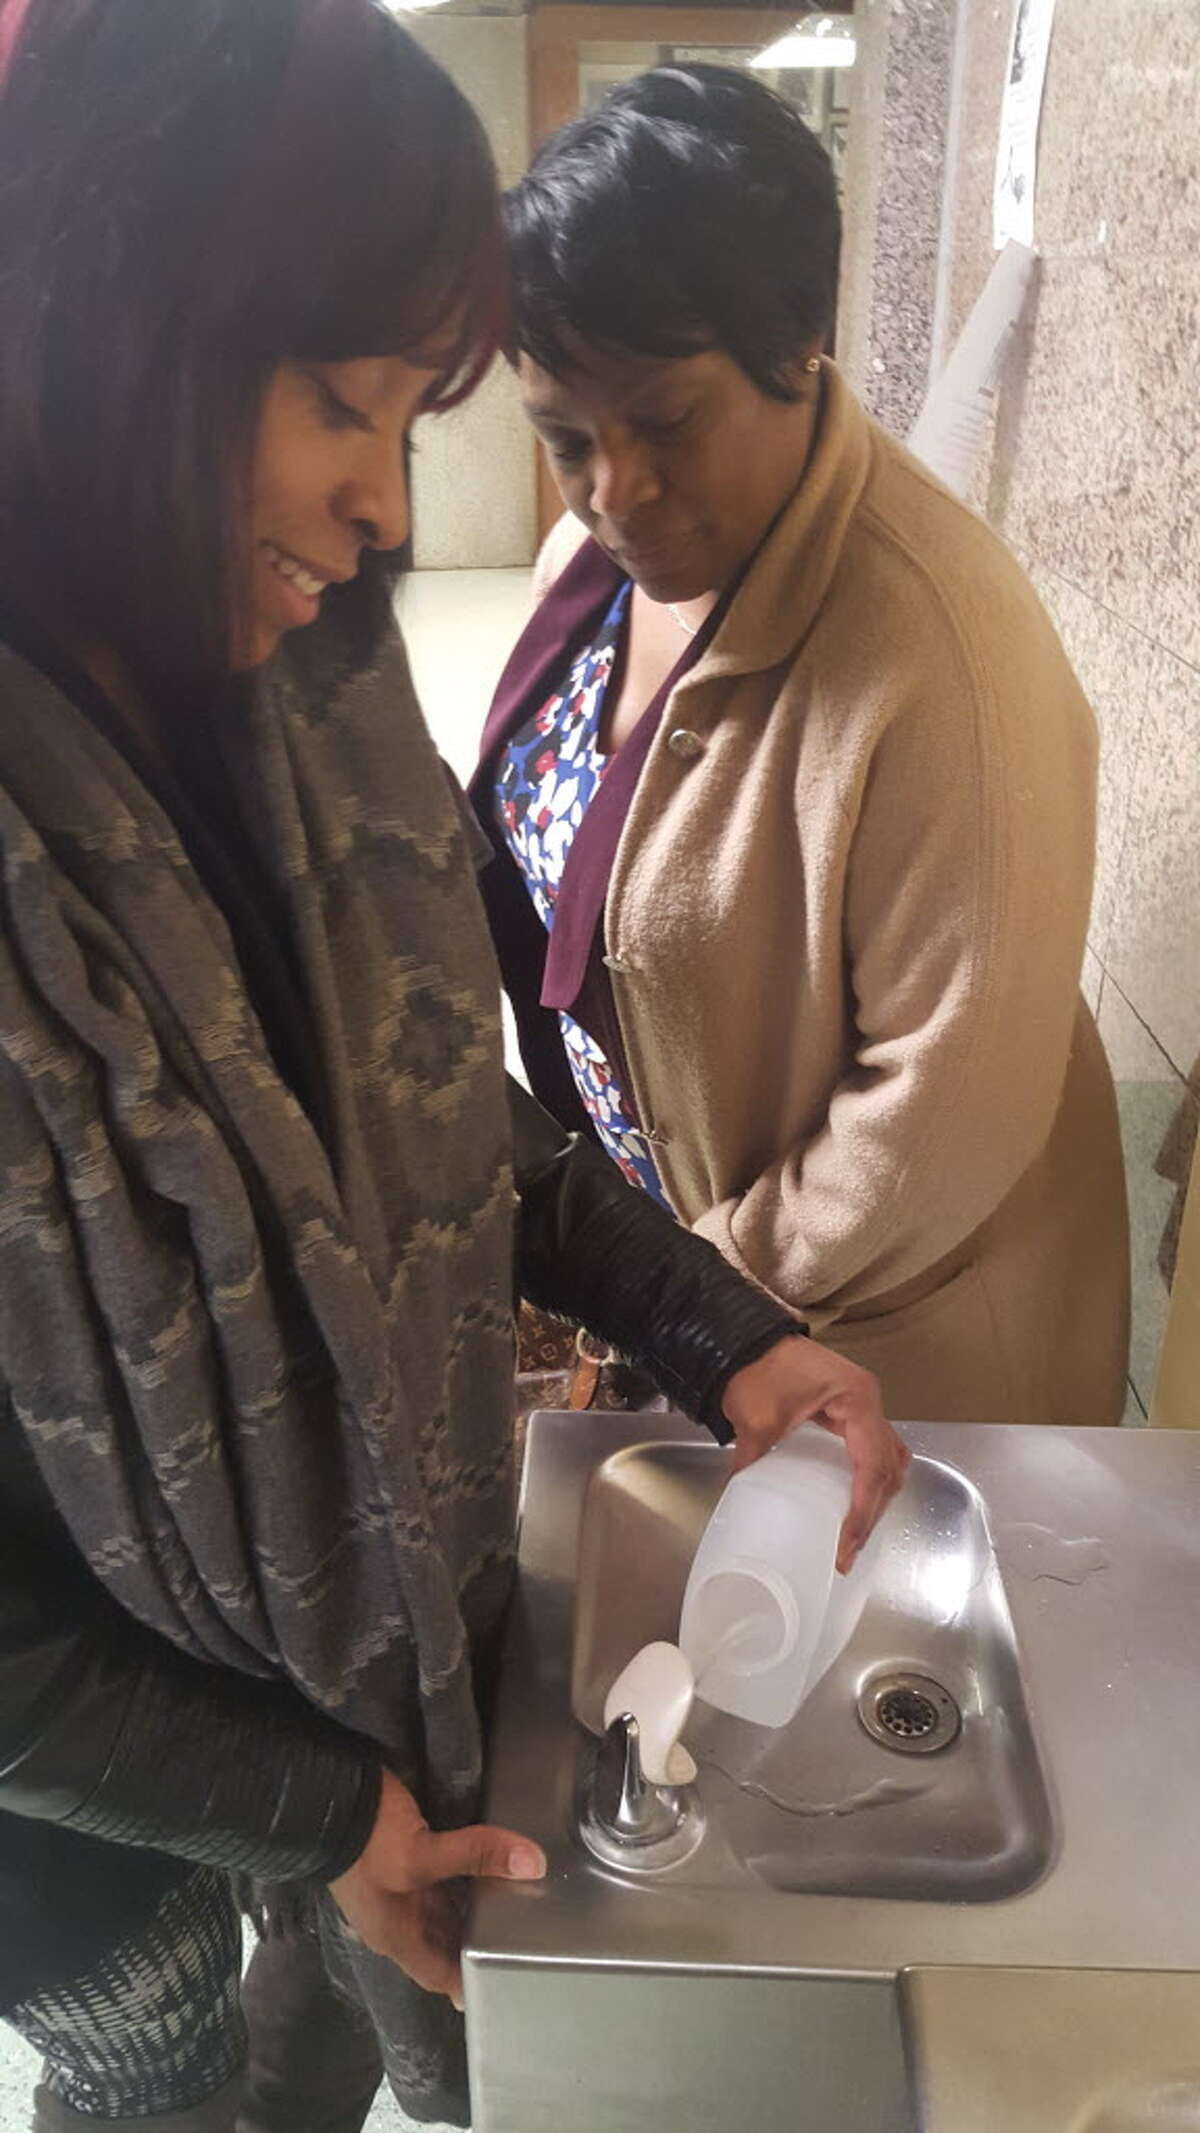 Jenifer Frazier, an epidemiological investigator for the Bridgeport Health Department's Lead Poisoning Prevention Program. left and Audrey Gaines, director of the Lead Poisoning Prevention Program for the city, show how they collected water to test for lead. They are demonstrating at Central High School, which has not yet been tested by the department.